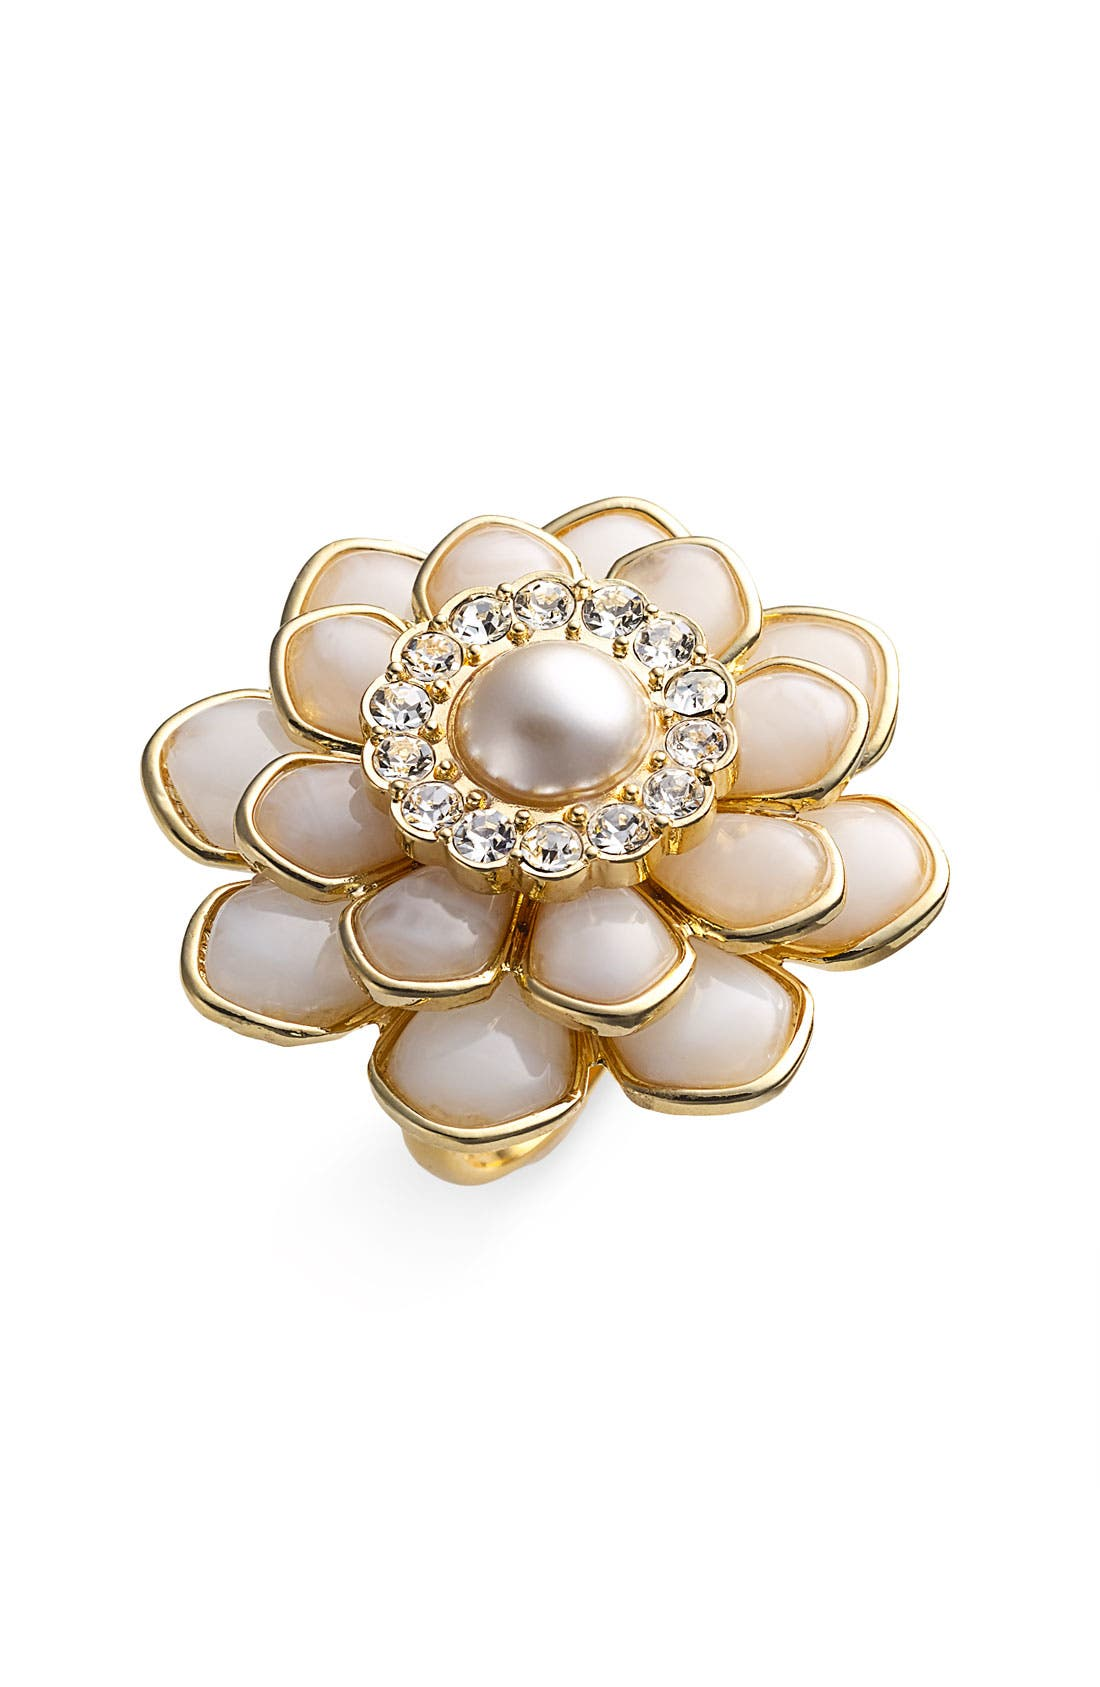 Main Image - kate spade new york 'sweet zinnia' oversized floral ring